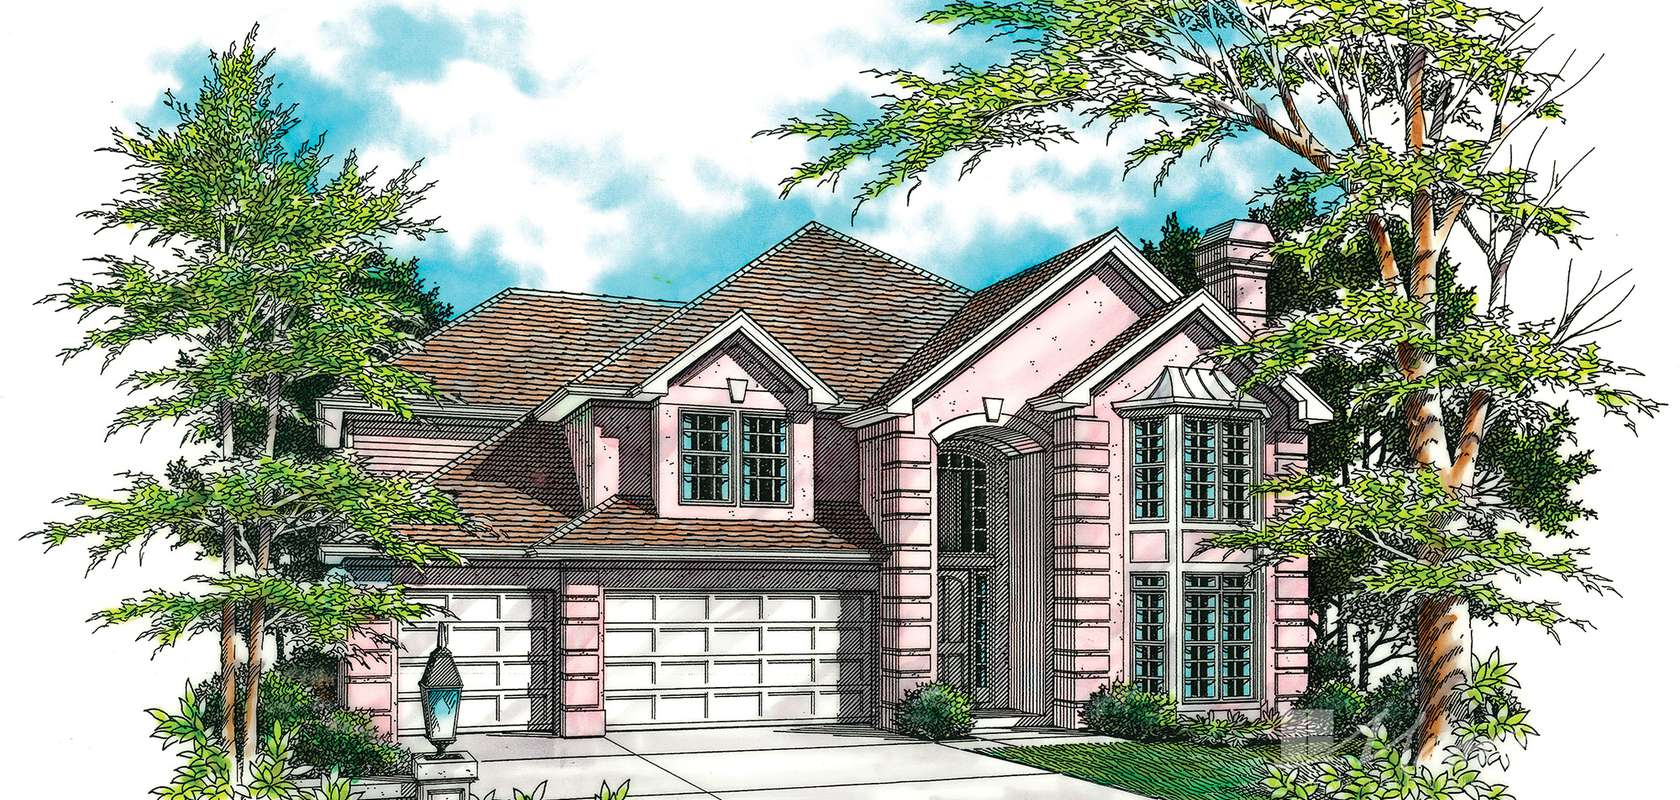 Mascord House Plan B2344: The Collison